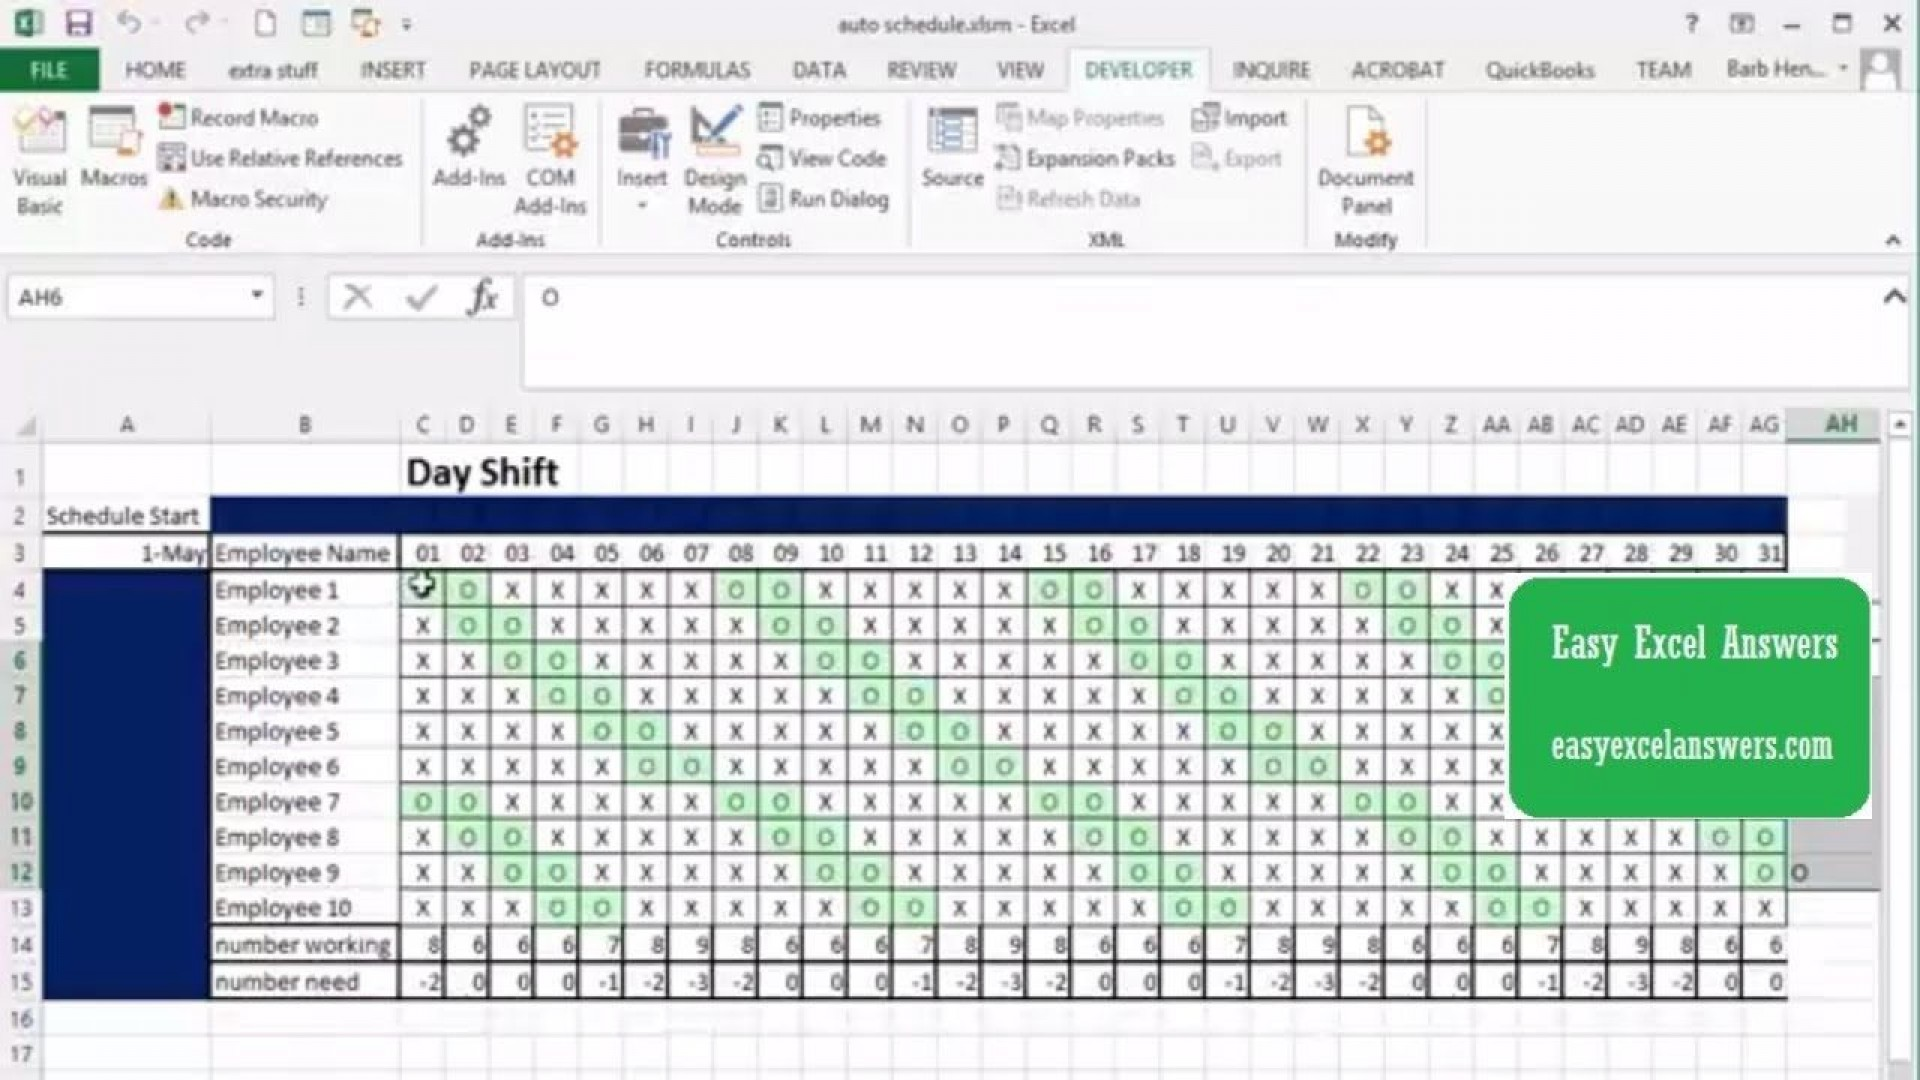 008 Incredible Employee Shift Scheduling Template Highest Quality  Schedule Google Sheet Work Plan Word Weekly Excel Free1920